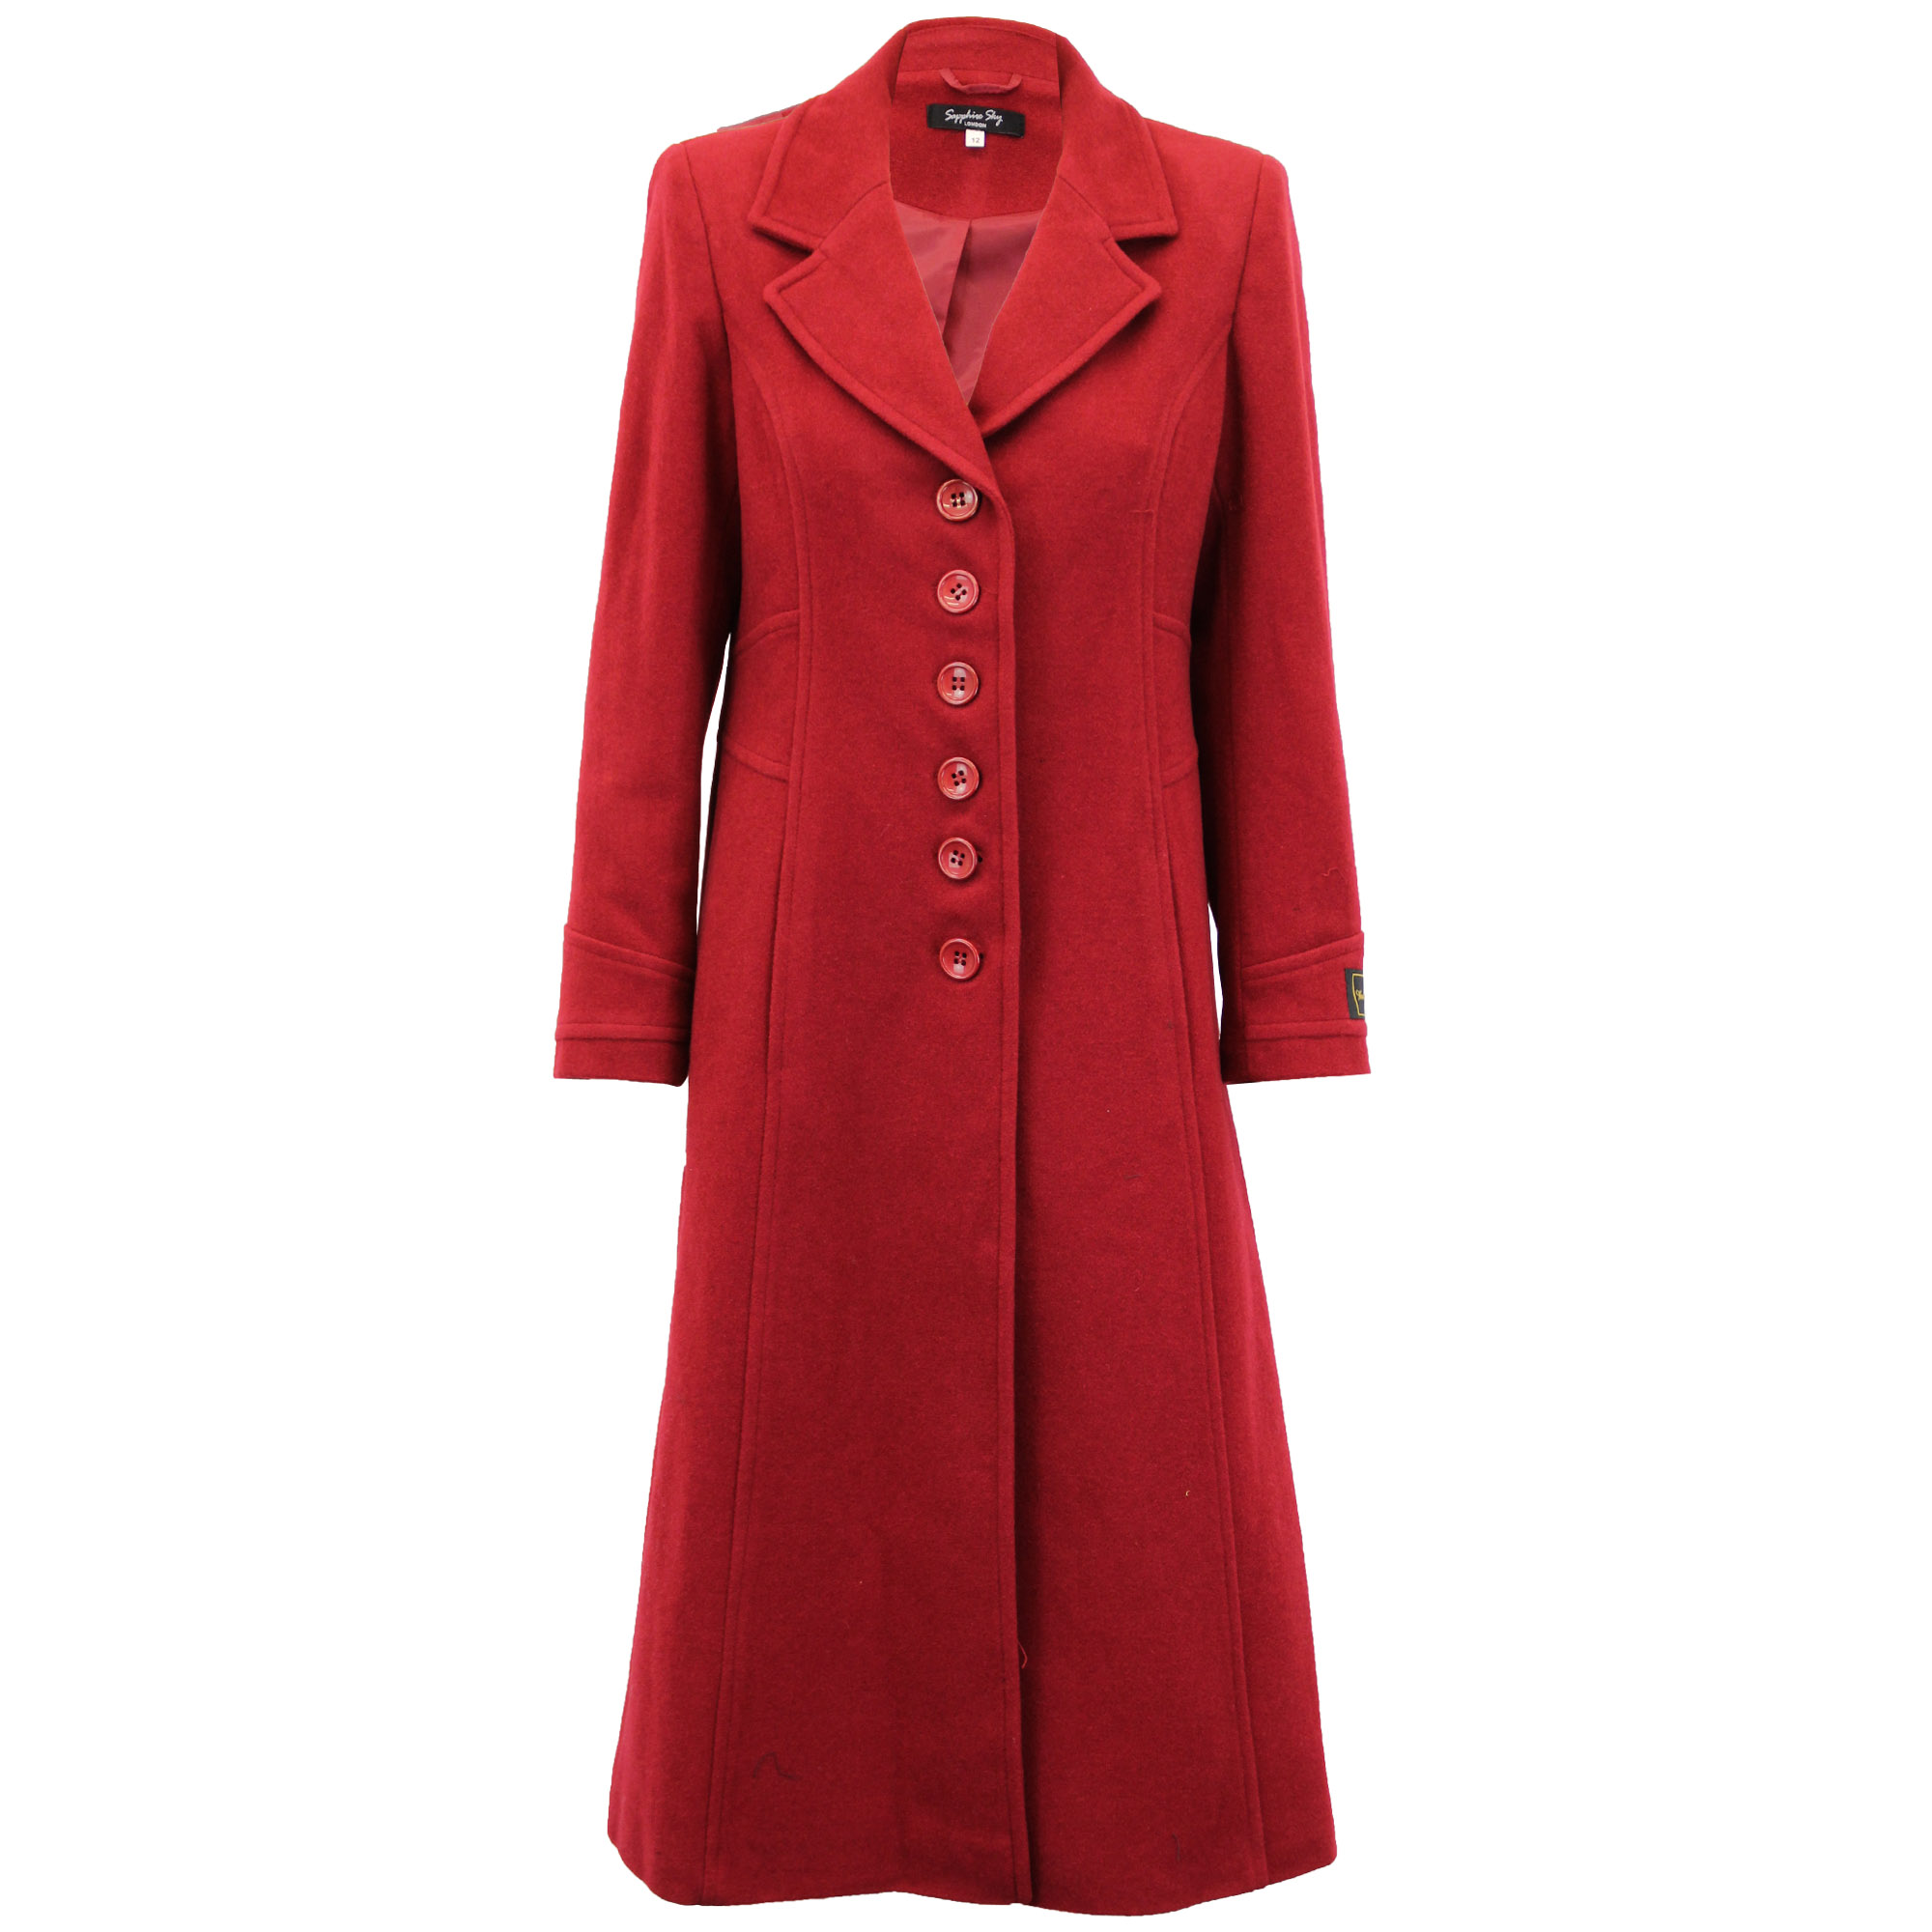 Men's Woolen Coats. Do you find the fashionable and popular mens wool coats online? Please join in ciproprescription.ga, Ericdress provides all kinds of woolen coats for men, including mens wool pea coat, mens wool trench coat, mens wool winter coats and mens wool overcoat, all wool coats are made with the last trends.